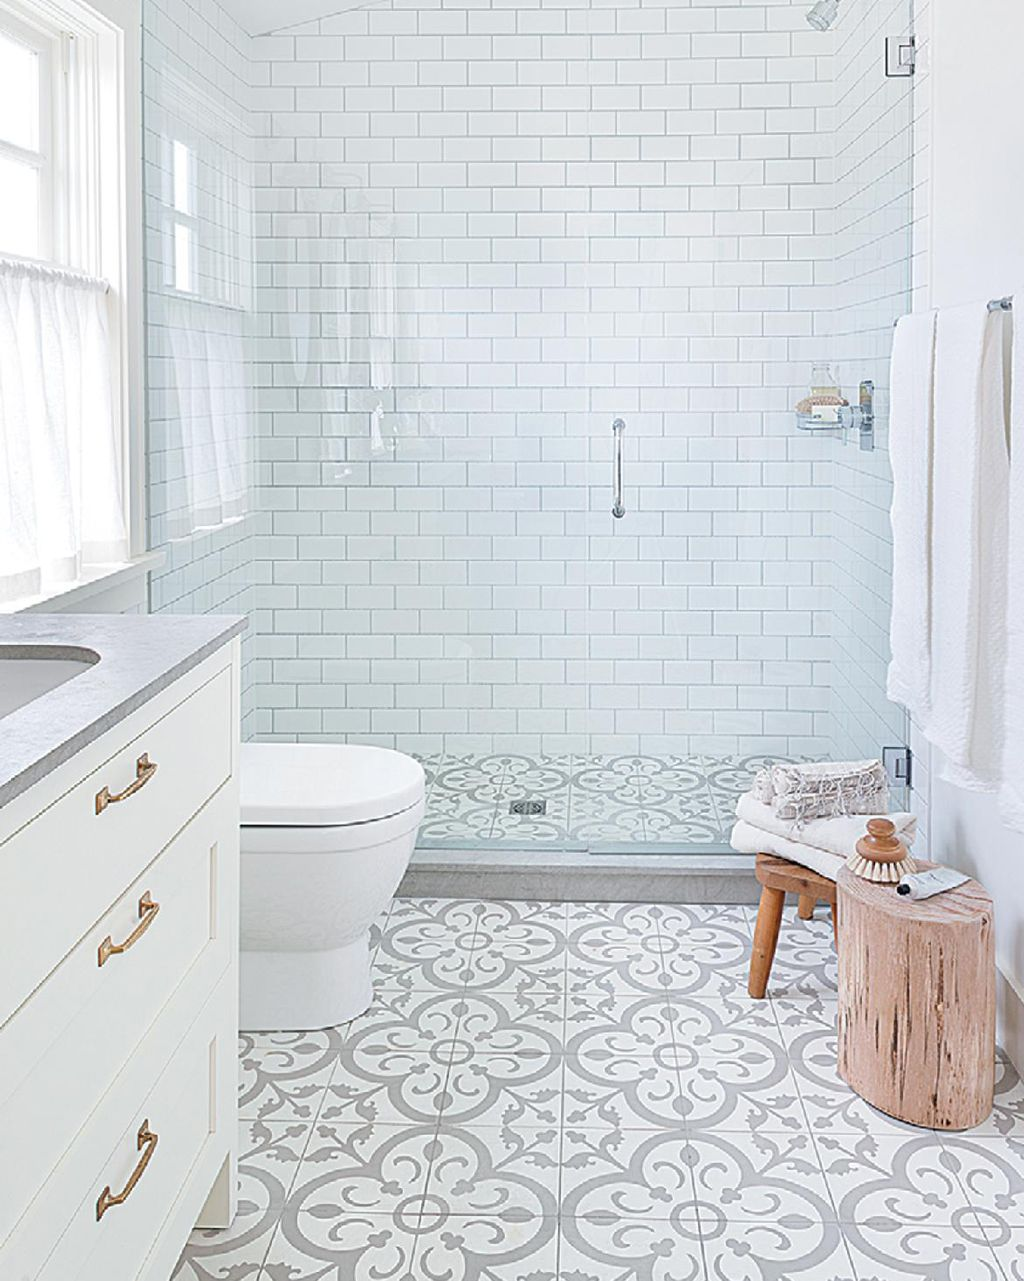 Bathroom carpet online bathroom design 2017 2018 pinterest a not so plain white bathroom with a great walk in shower gray and white patterned encaustic tile floors via dailygadgetfo Image collections